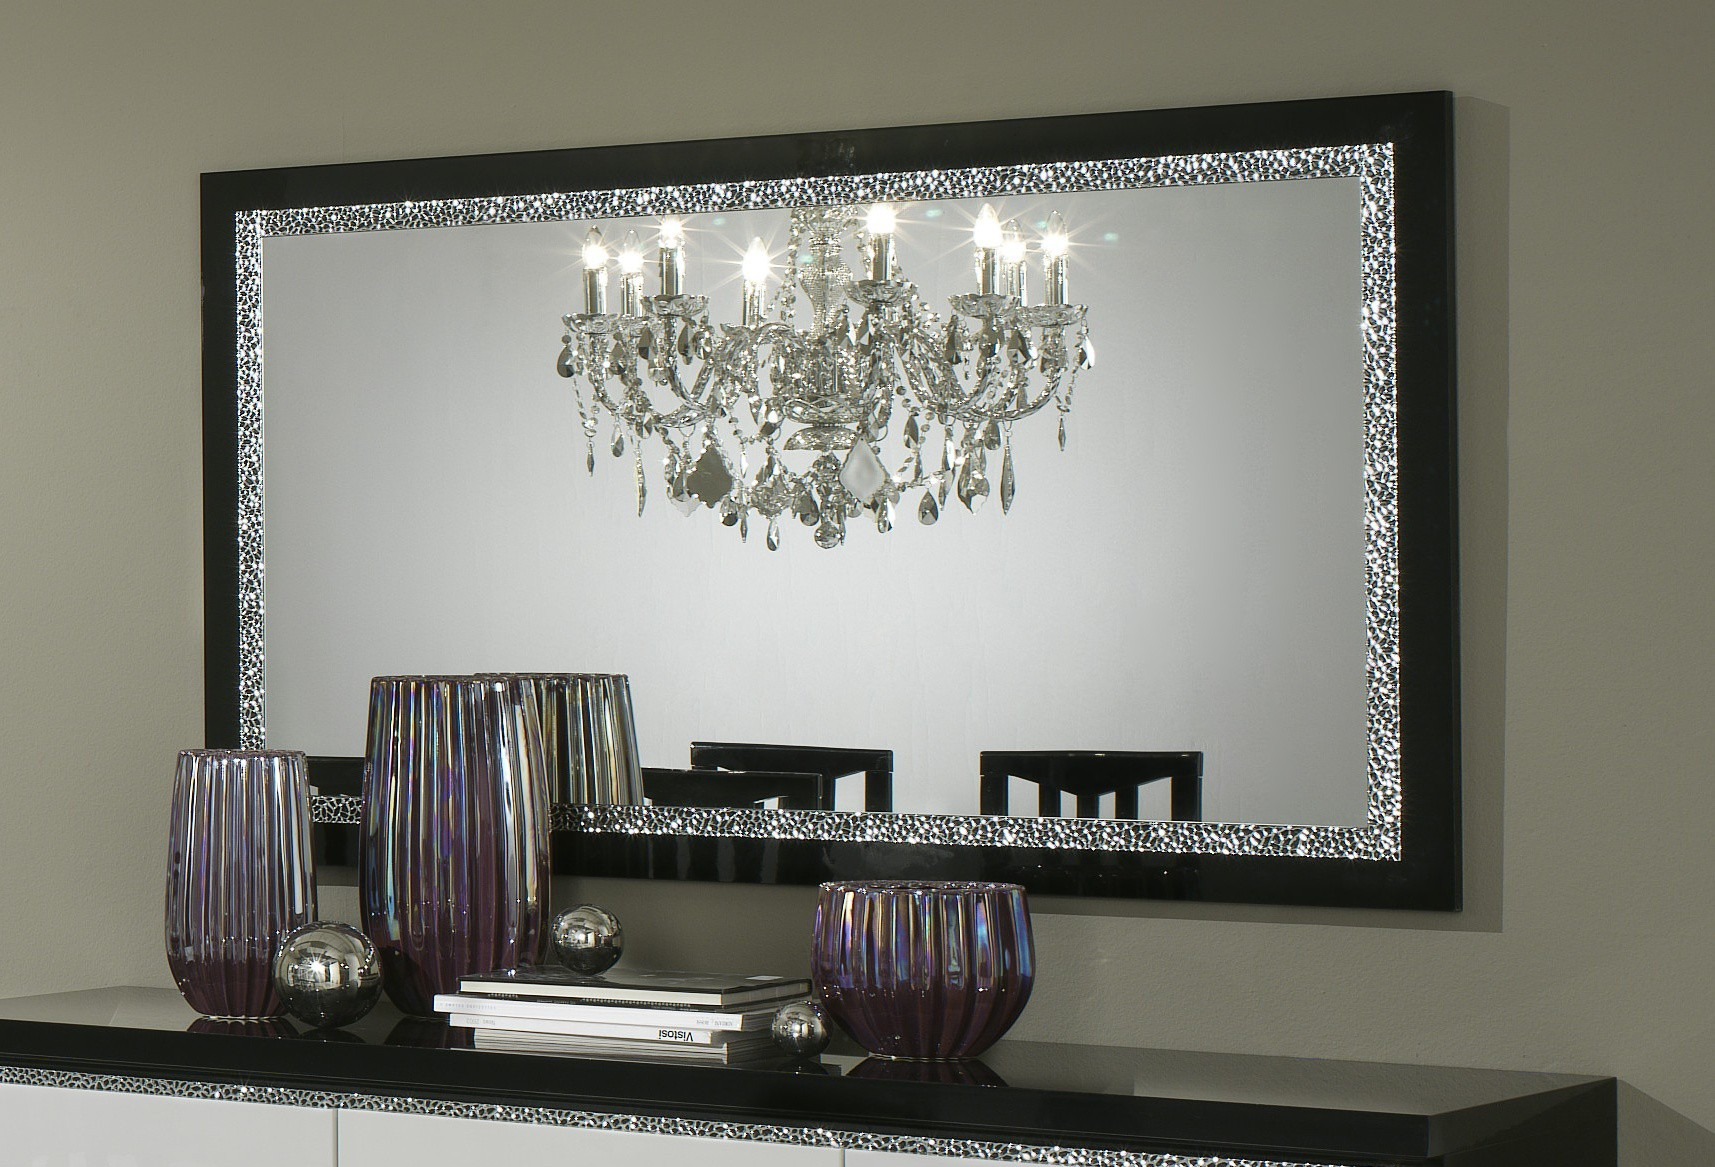 miroir de salon id es de d coration int rieure french. Black Bedroom Furniture Sets. Home Design Ideas